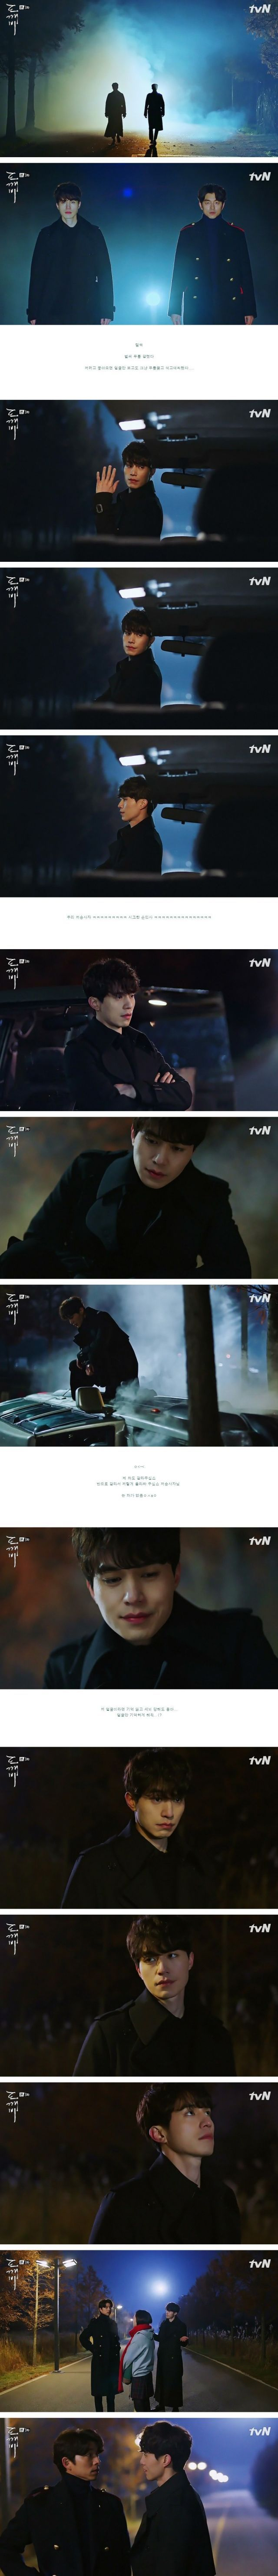 AMEM LEE DONG WOOK [Spoiler] Added episodes 3 and 4 captures for the #kdrama 'Goblin'